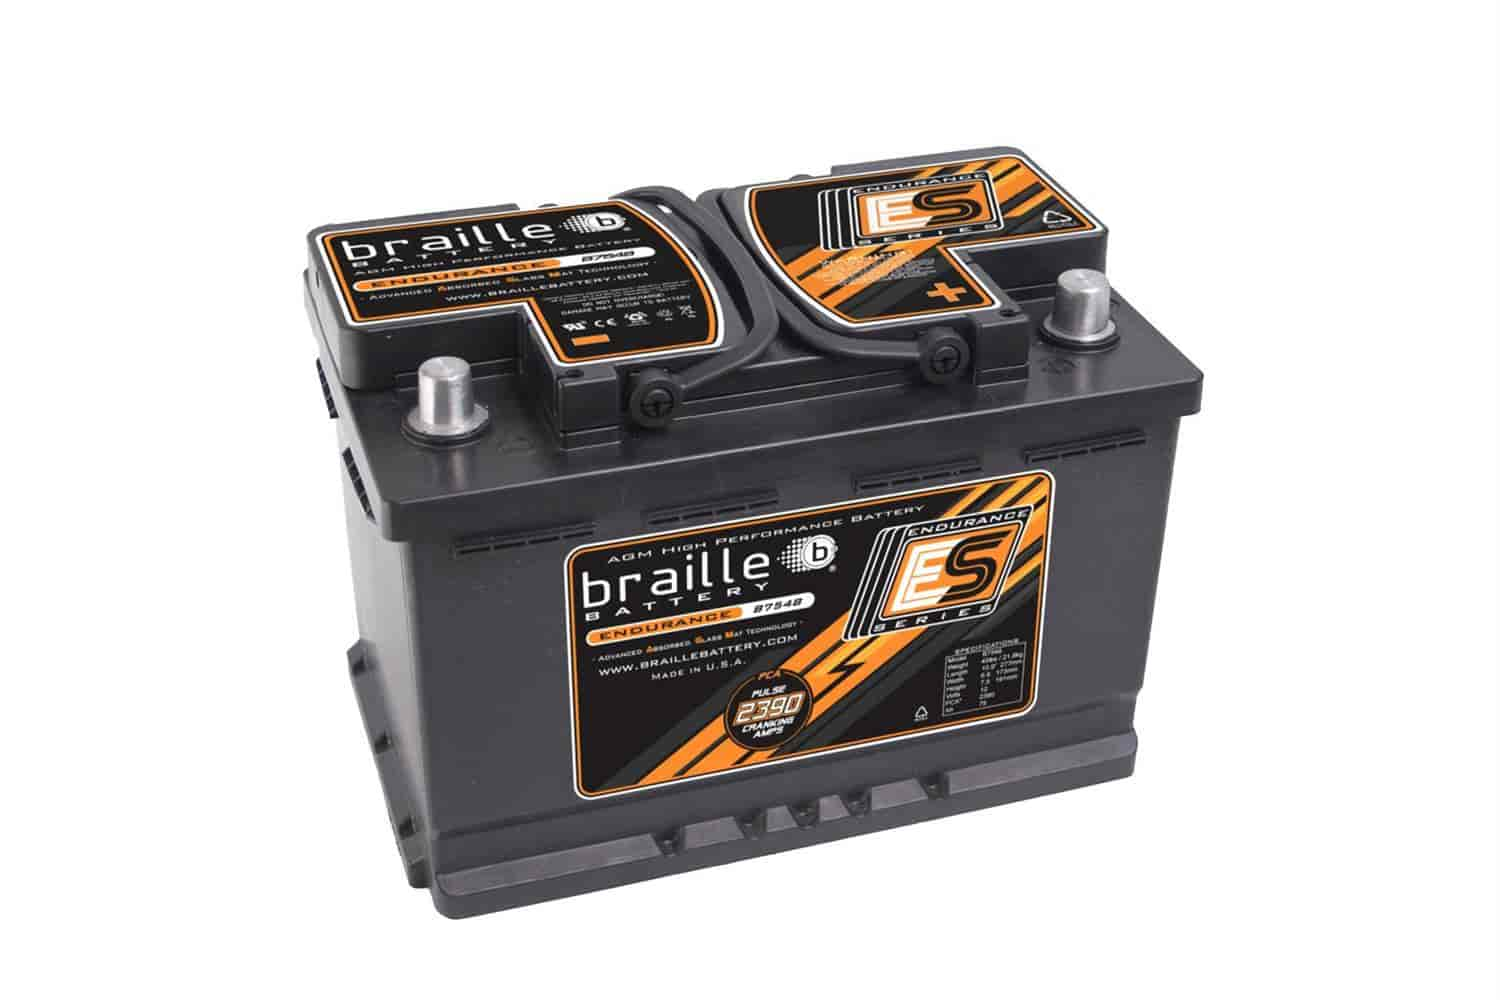 Braille Battery B7548 - Braille Endurance Series Batteries